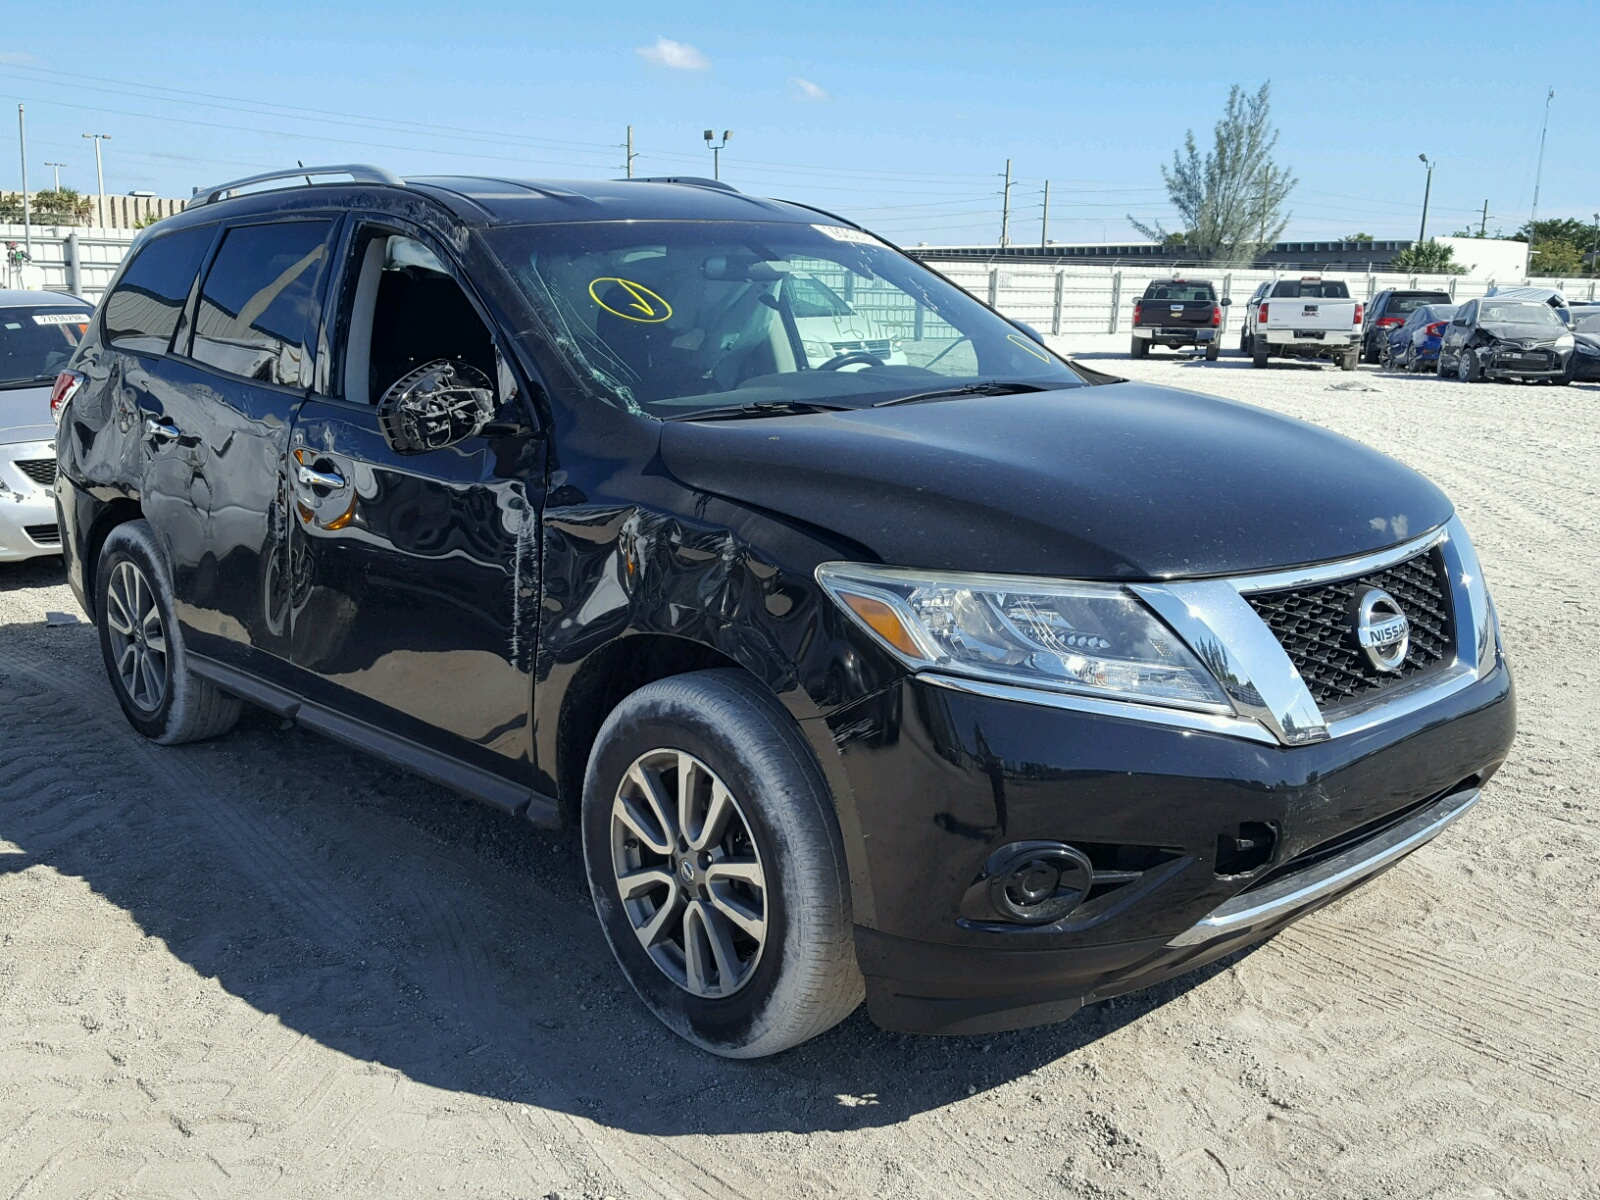 vehicles for living title model with pathfinder fq higher qatar or exchange nissan sale information